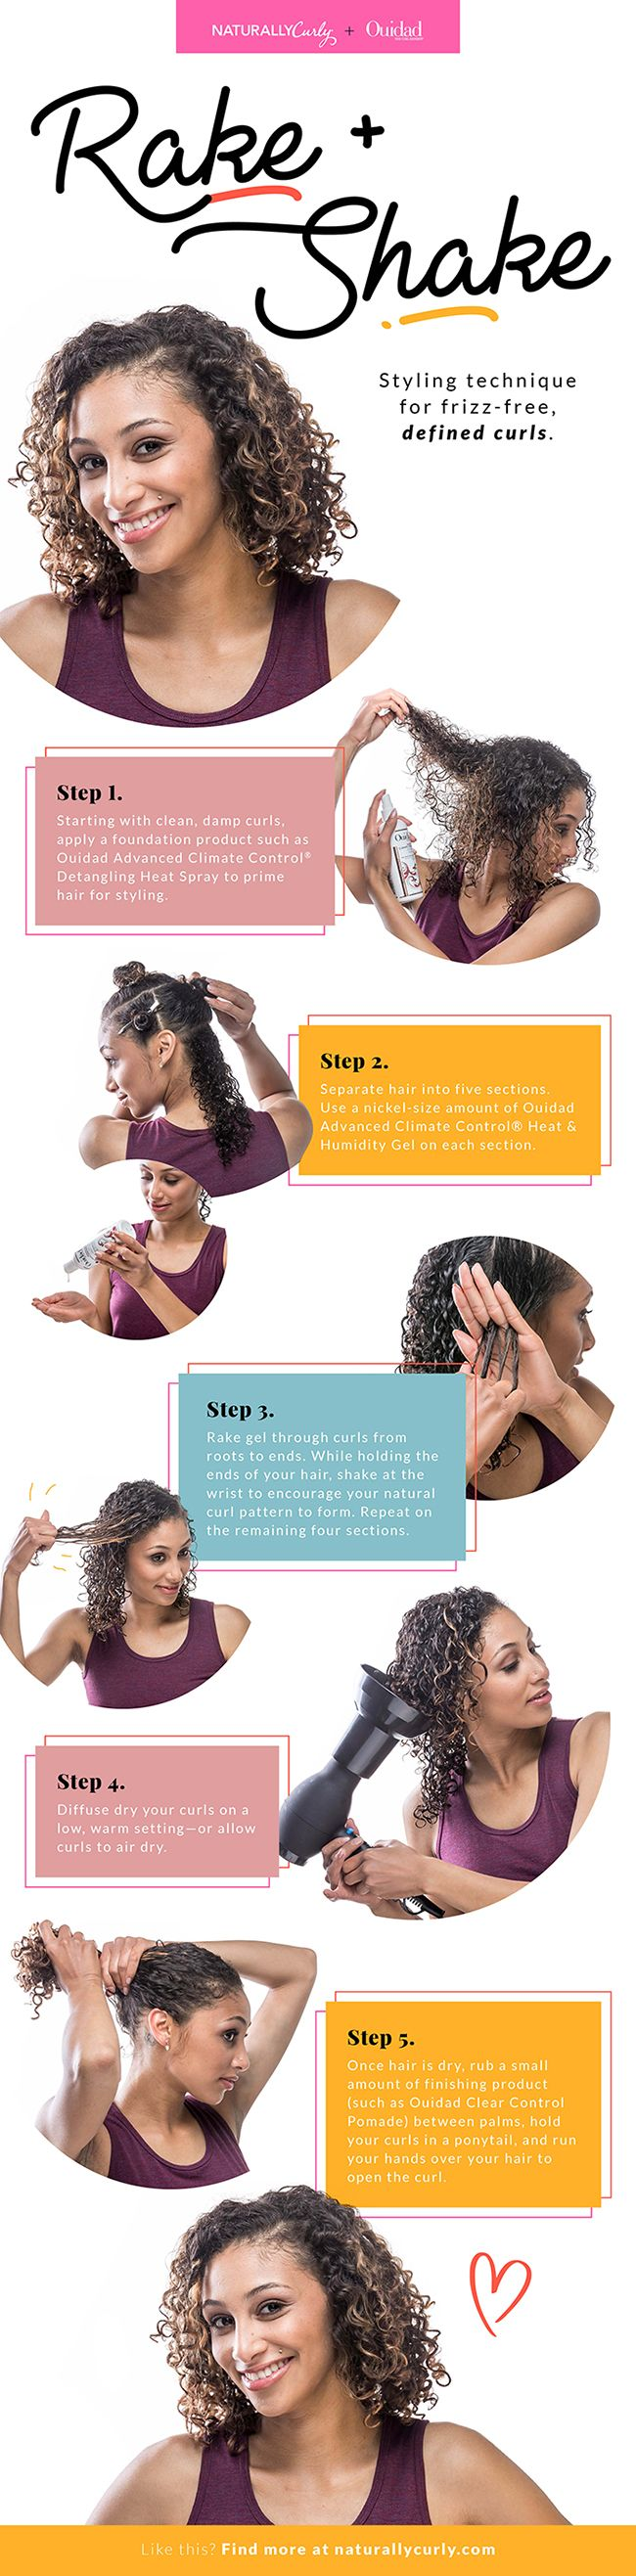 Ouidad created this signature method that's now used in salons and by fans of the product line.